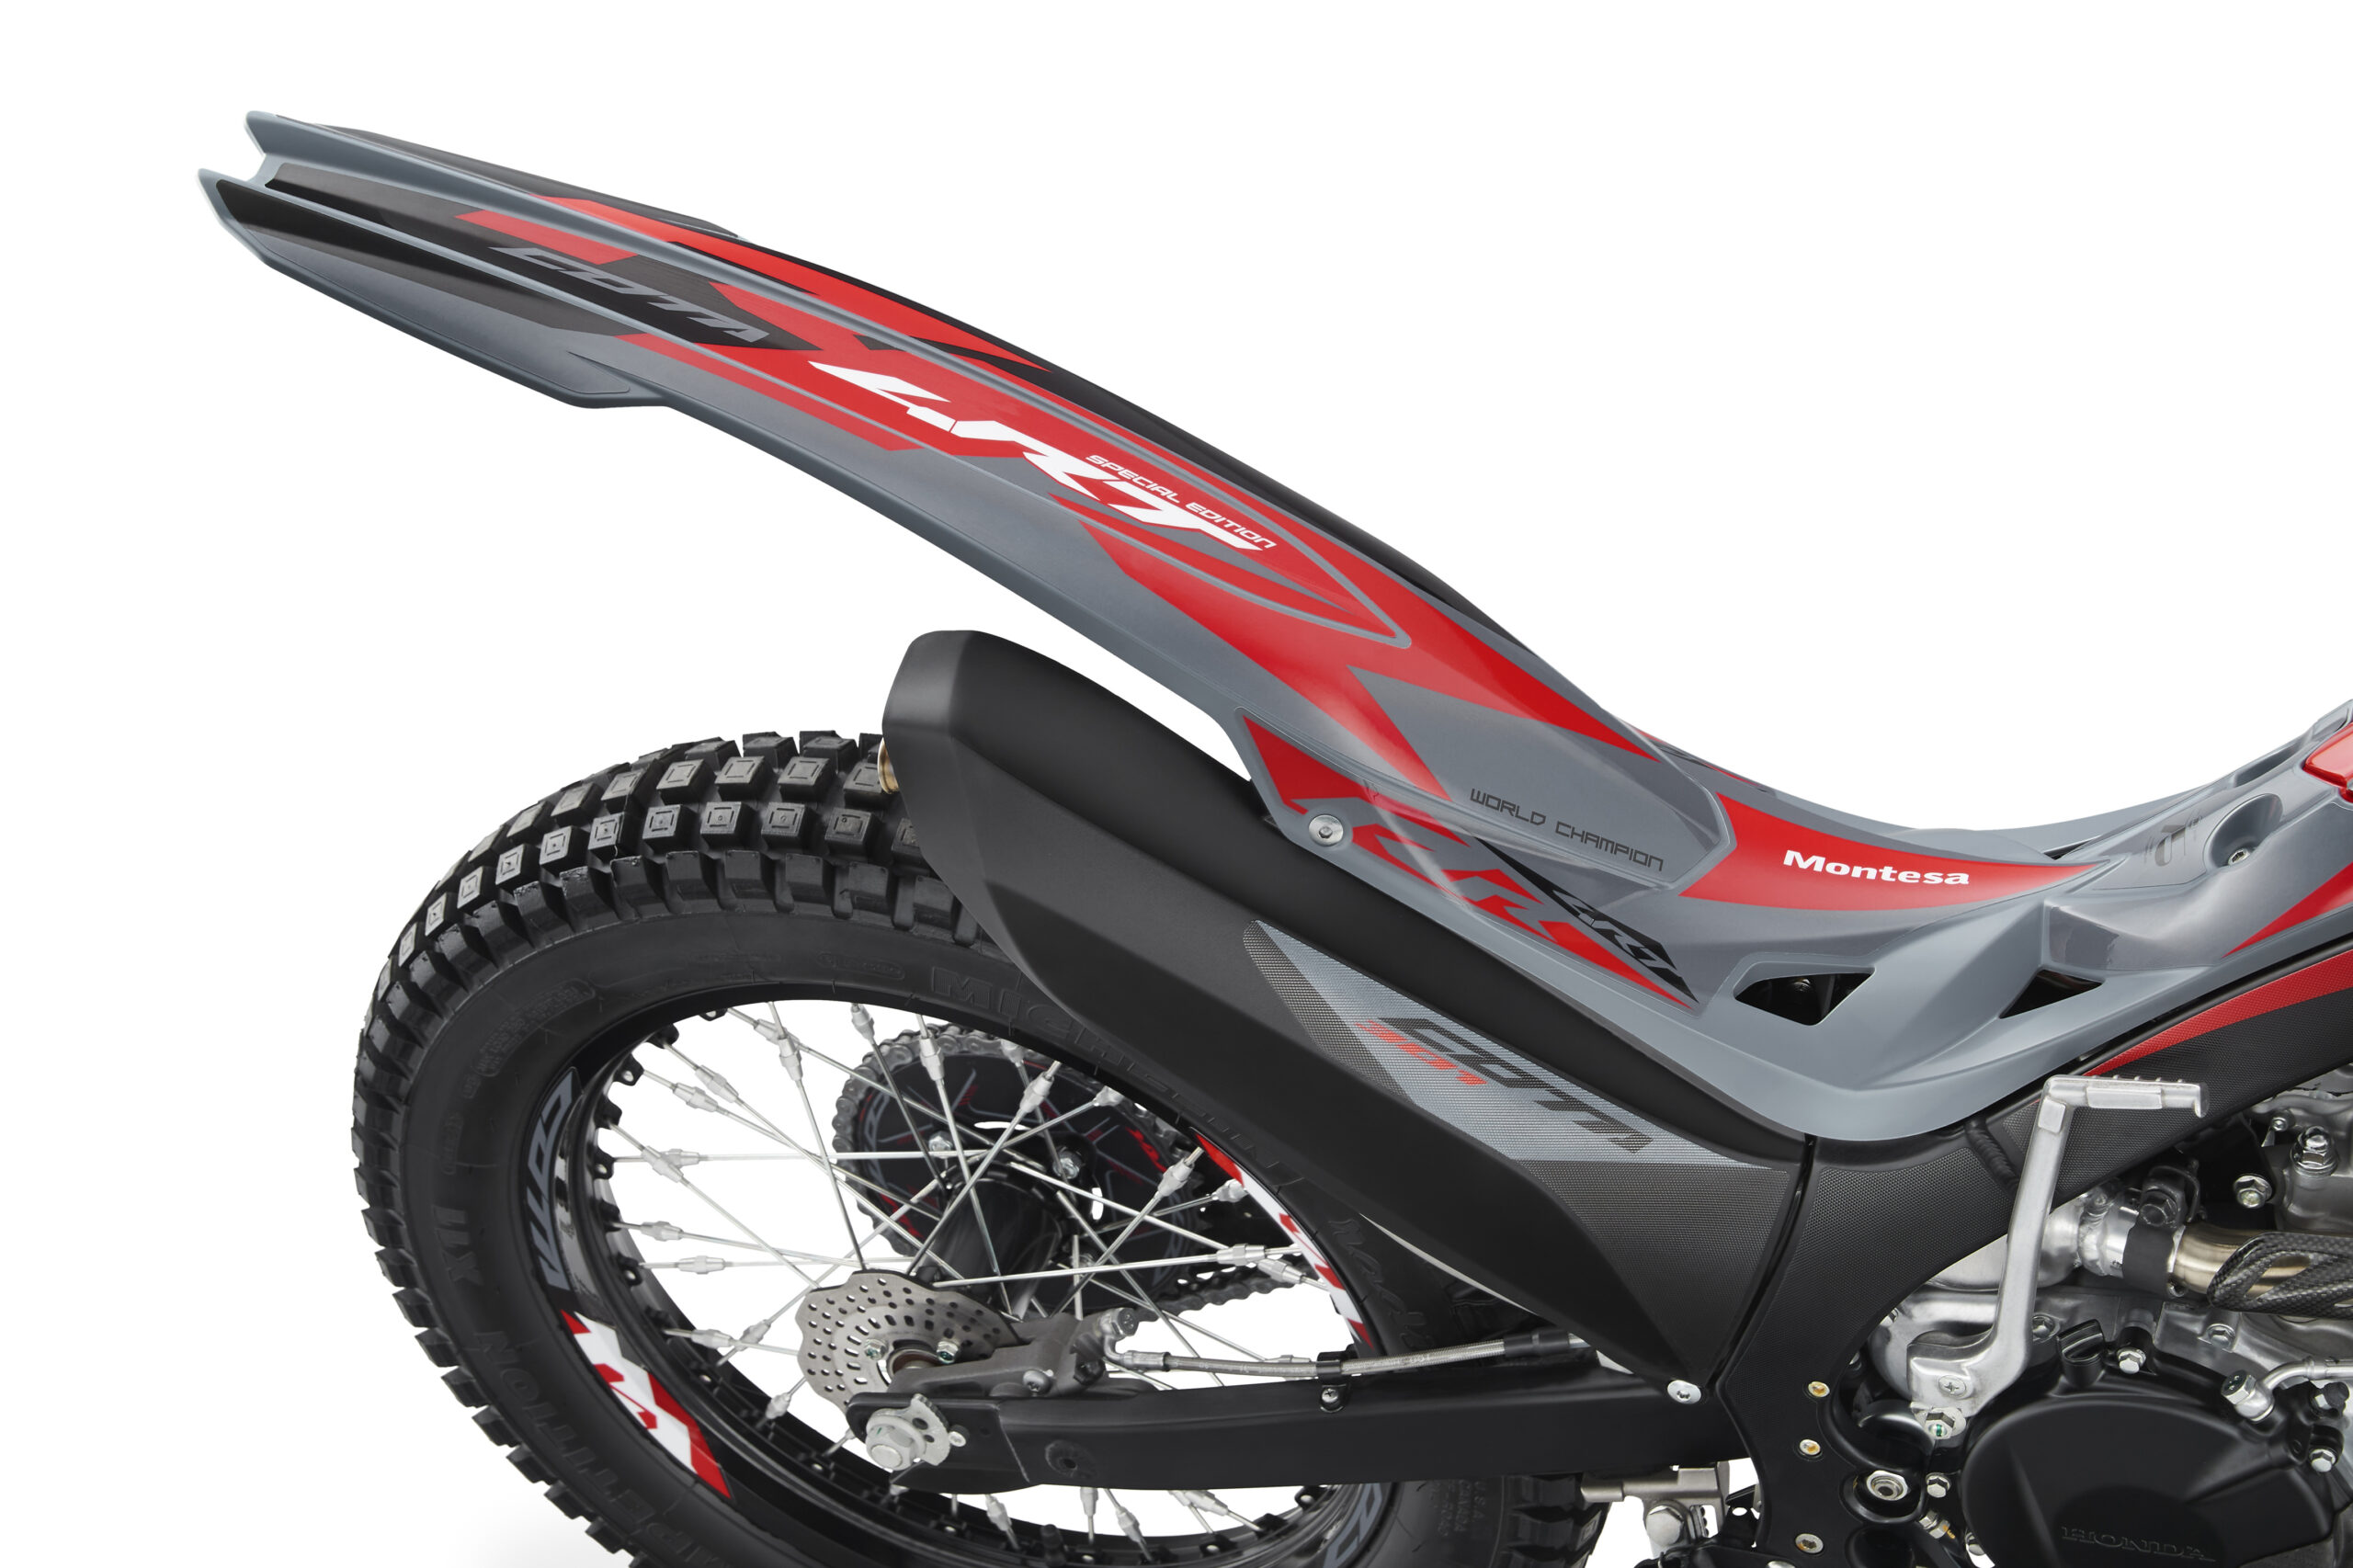 https://www.montesa.com/wp-content/uploads/2020/08/Montesa_Cota_301RT_YM2021_M0006-scaled.jpg